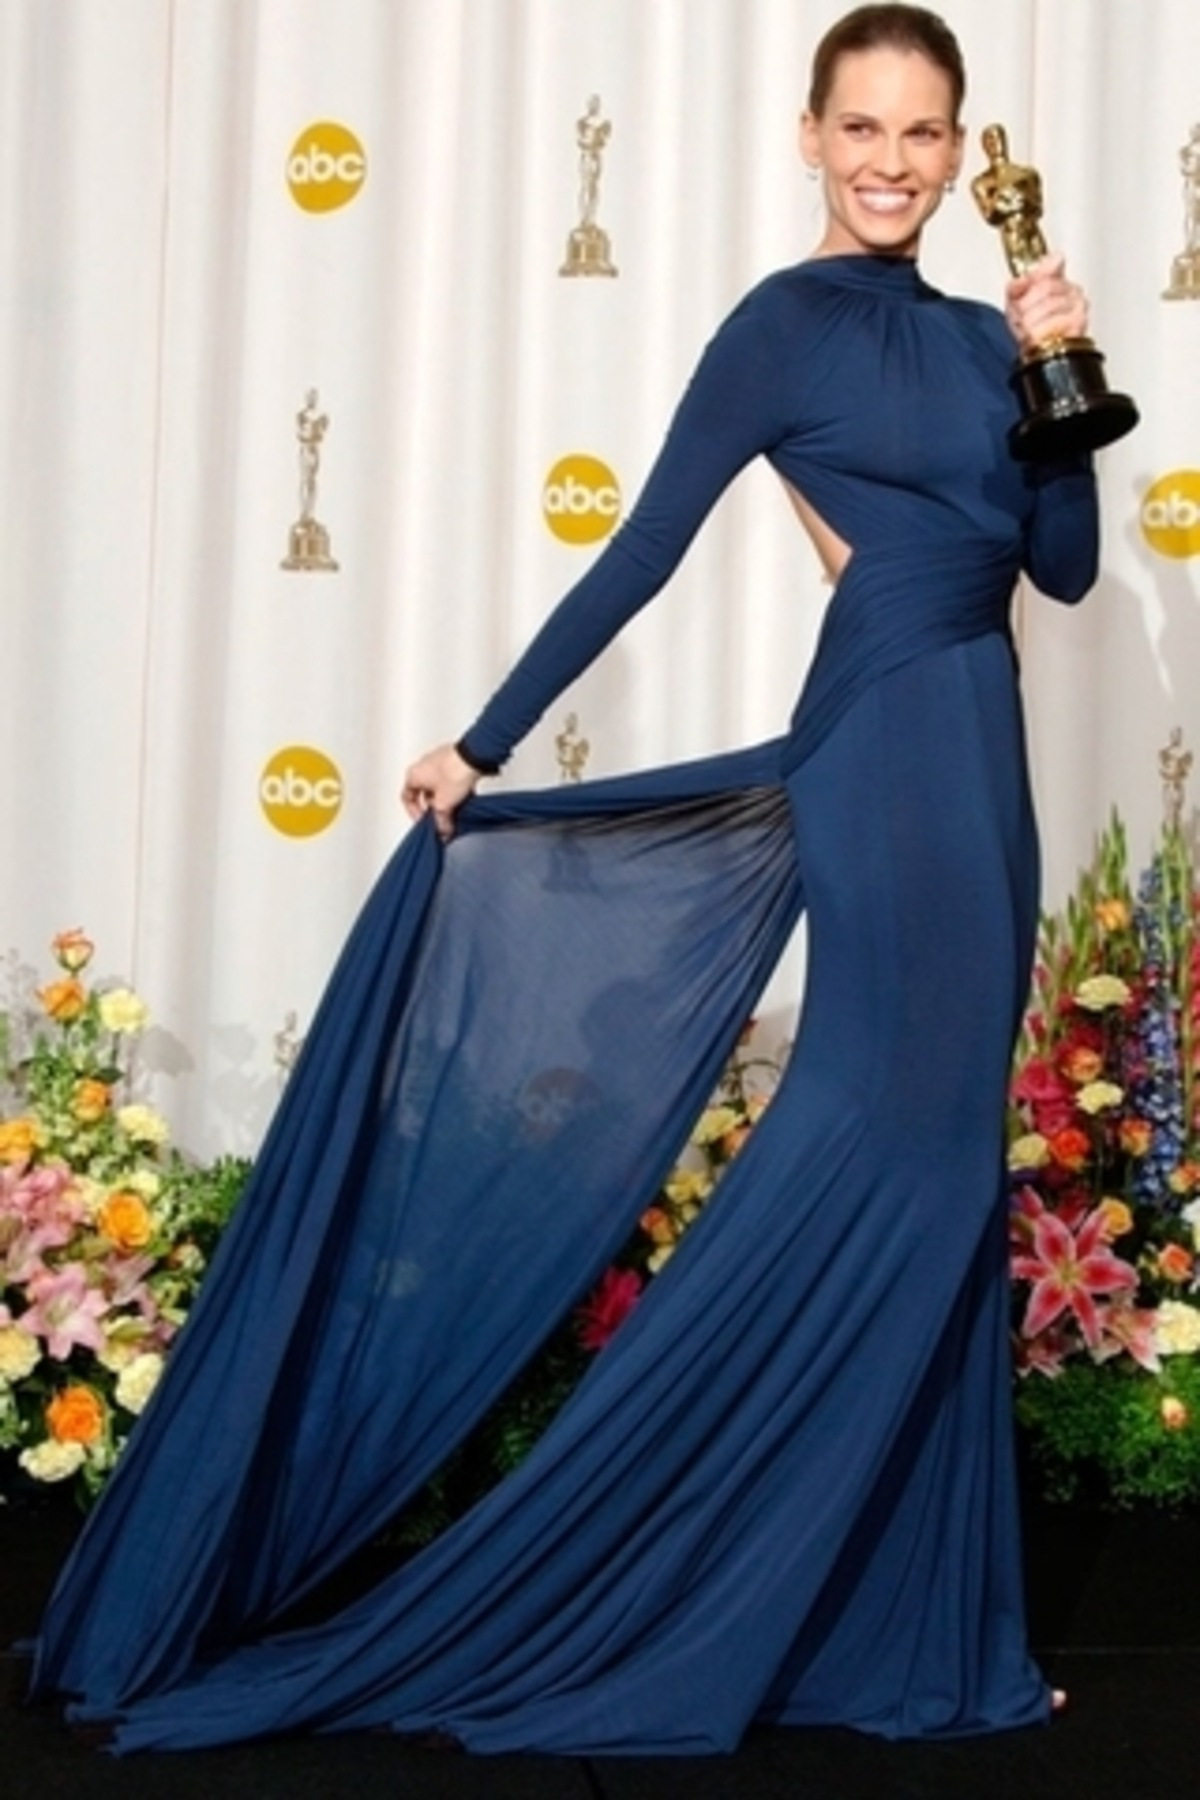 small_2005-Oscars_Fashion_-_All-time_Best_Dresses_on_the_Oscars_Red_Carpet-Fustany-Hilary_Swank-Oscars-Guy_Laroche-2005